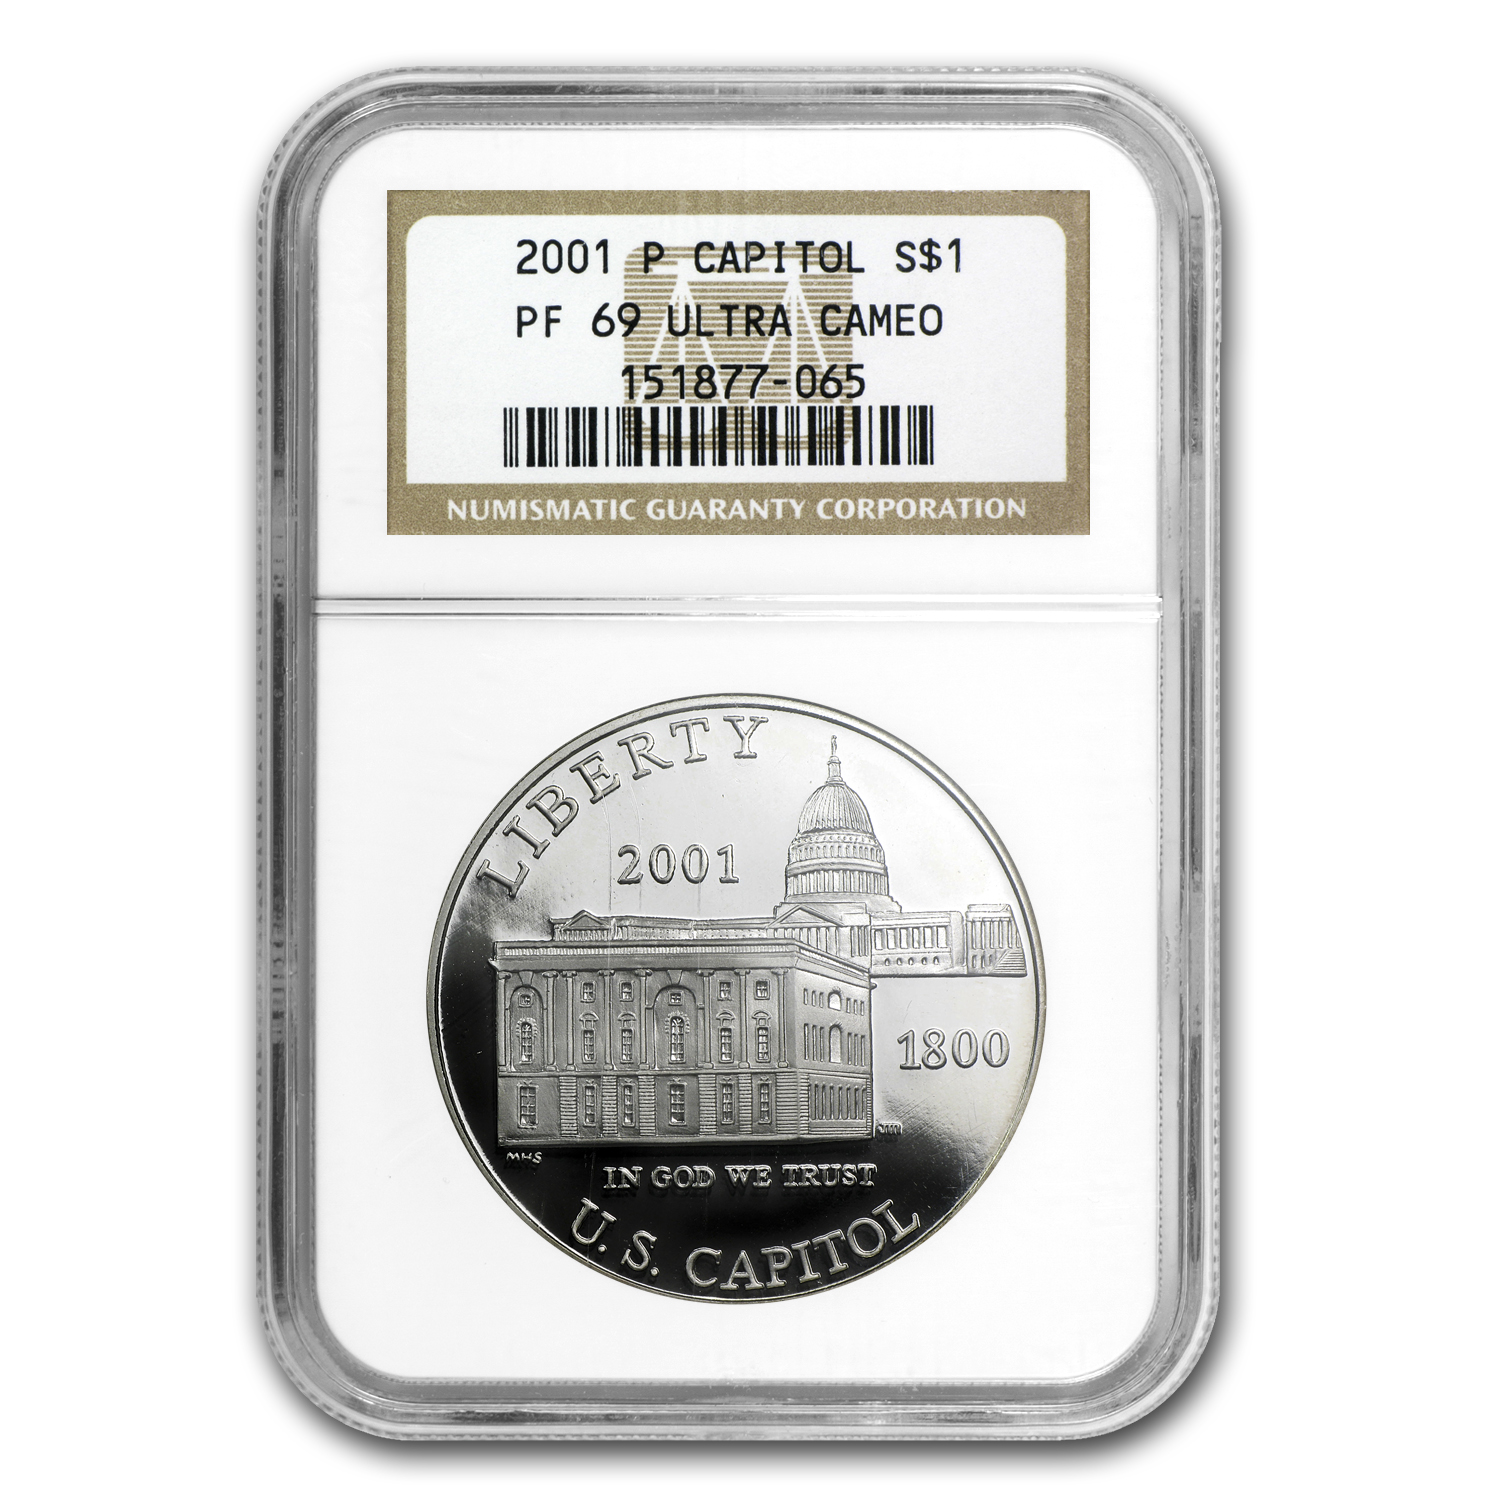 2001-P Capitol Visitor Center $1 Silver Commem PF-69 NGC